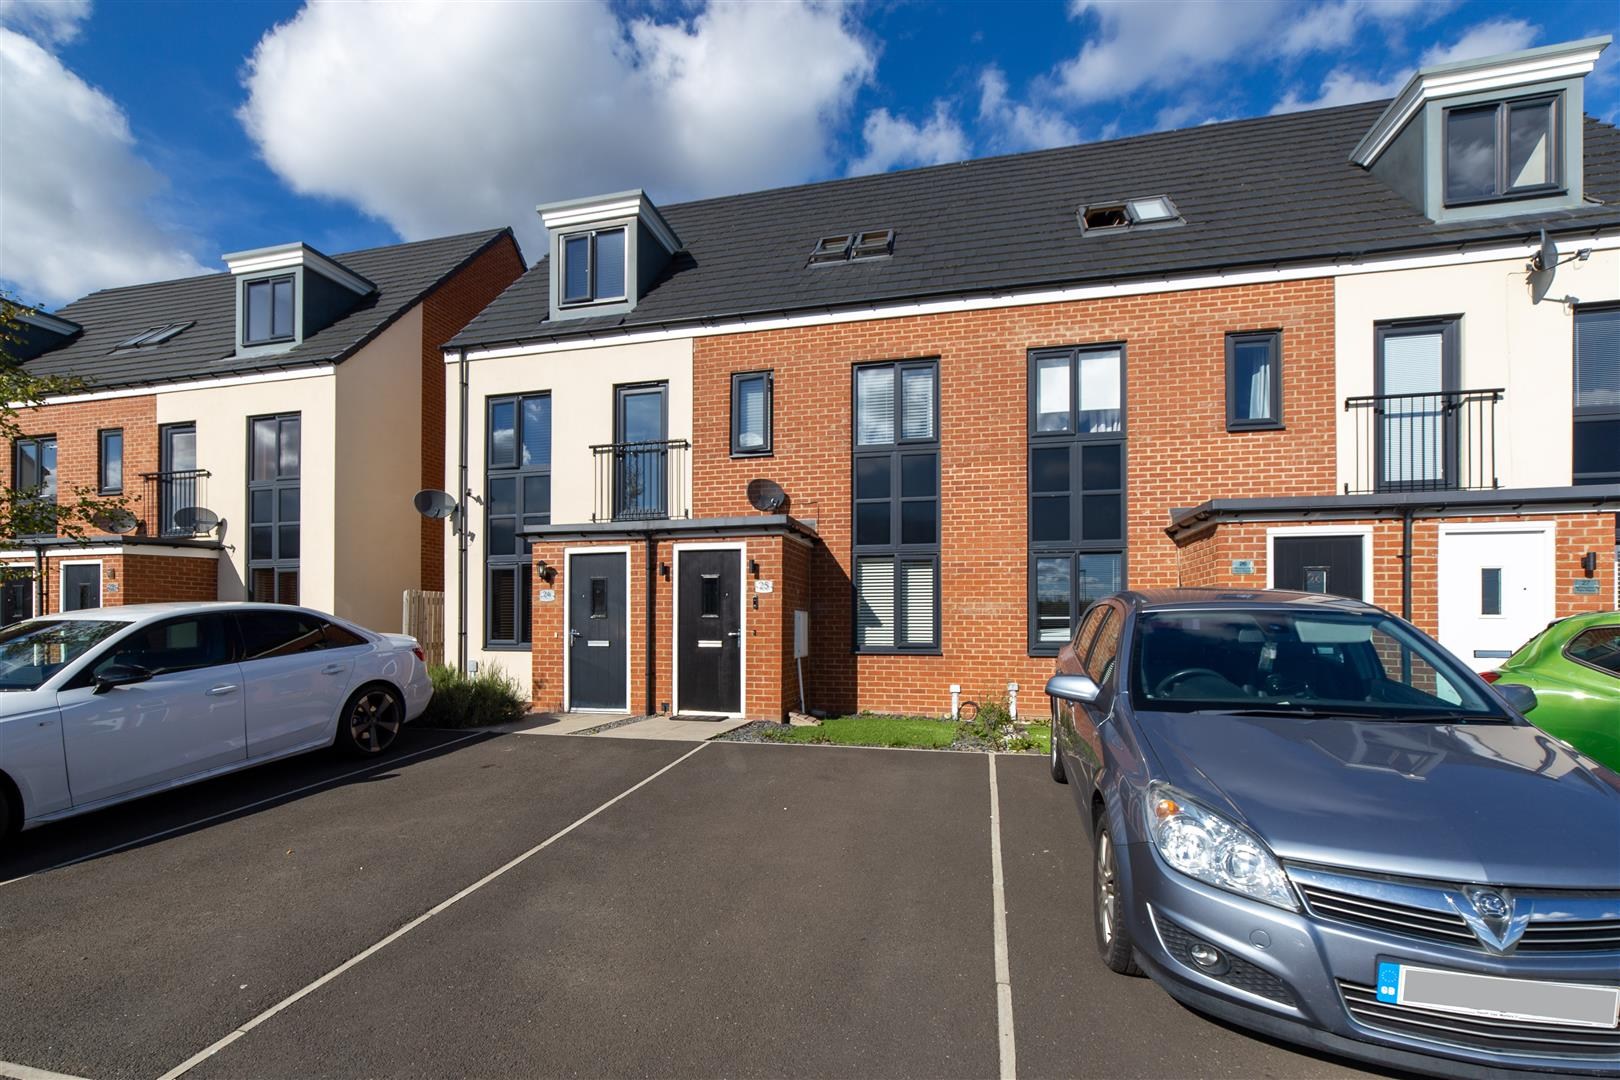 3 bed terraced house for sale in Elmwood Park Mews, Newcastle Upon Tyne, NE13